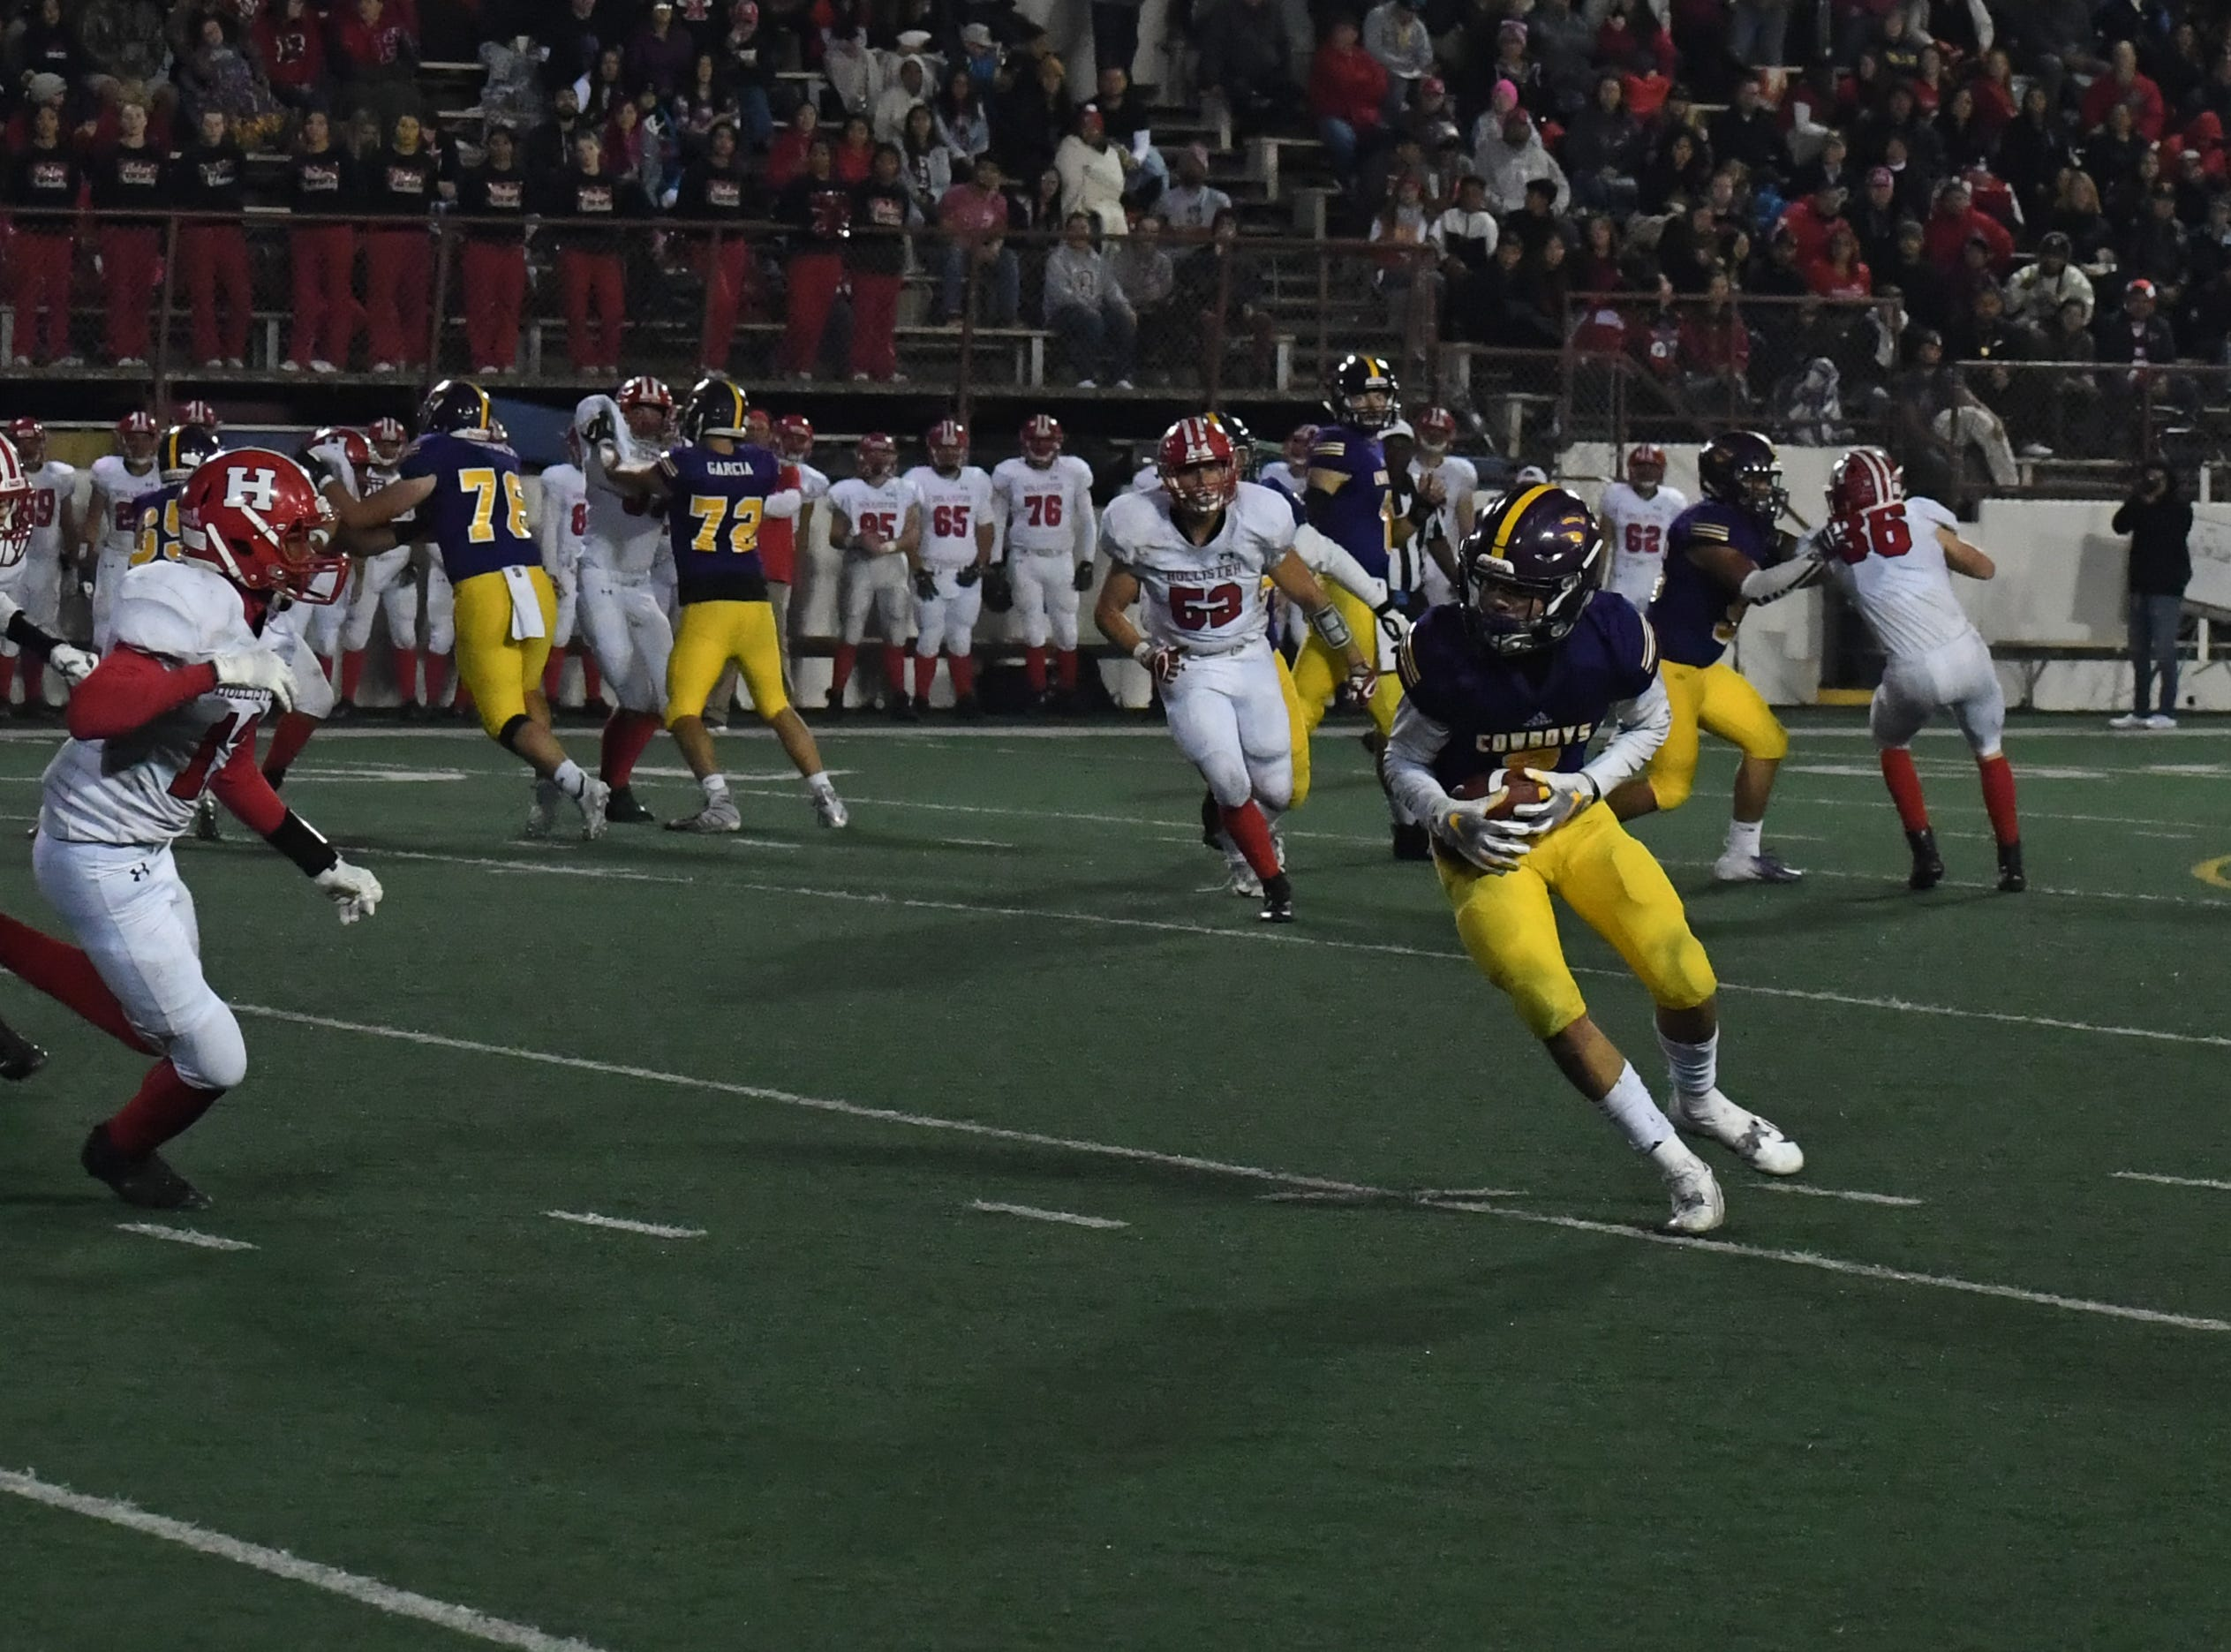 Wide receiver Zachary Robison (2) turns upfield following a catch.